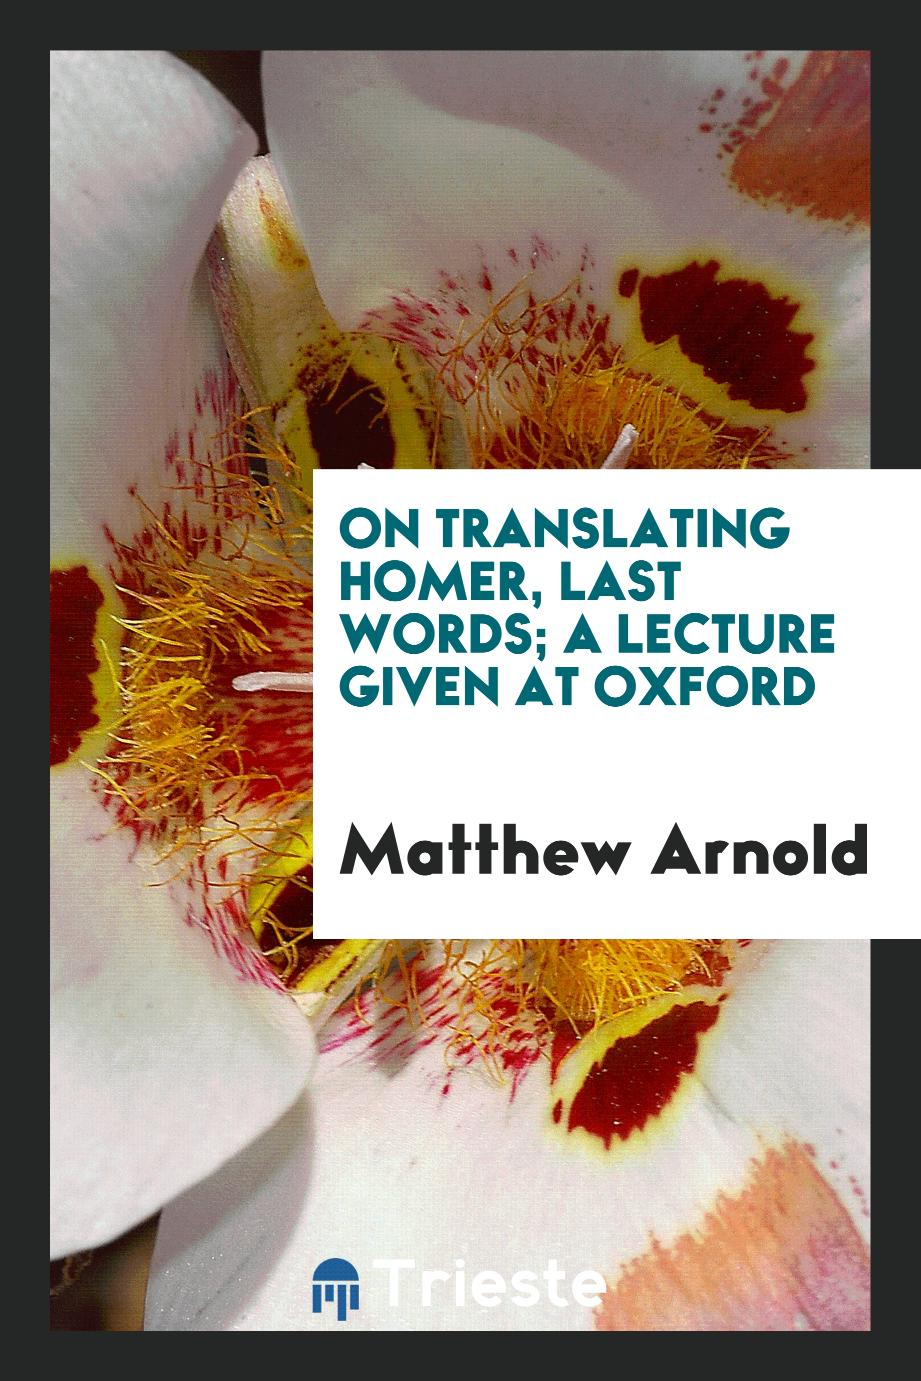 On translating Homer, last words; a lecture given at oxford